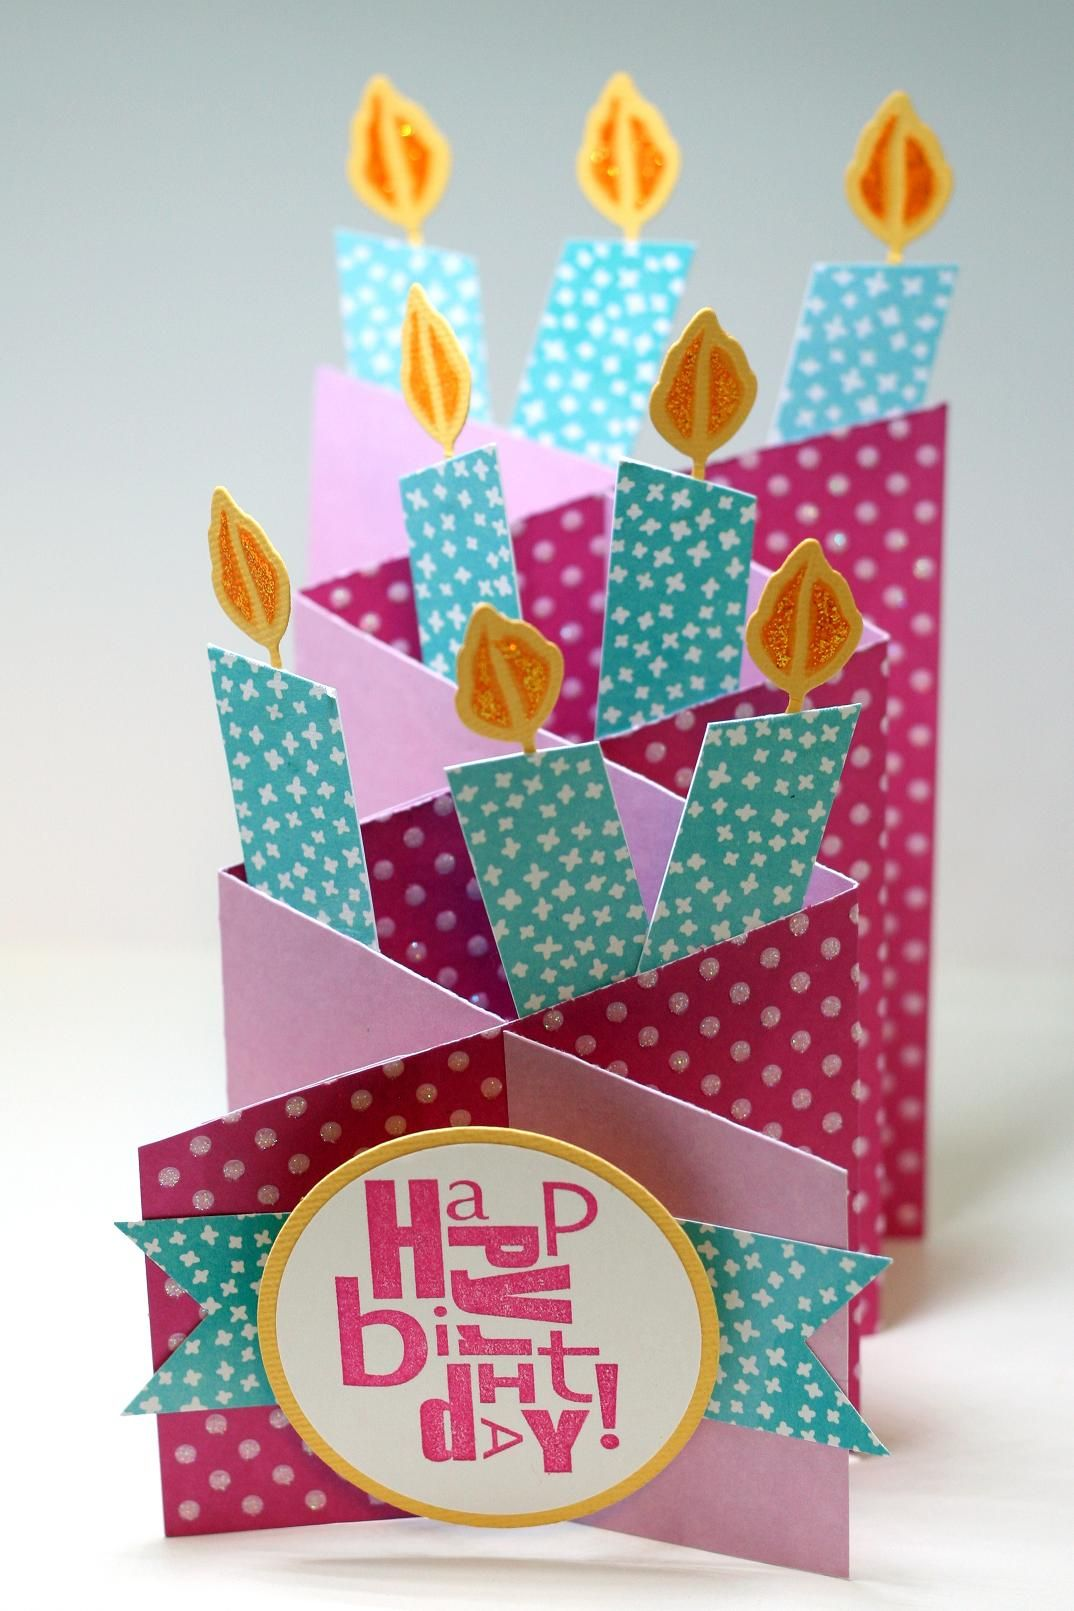 How to scrapbook on youtube - This Is My First Try At A Cascading Card After Watching A Few How To Videos On Youtube I Love These Cards They Fold Up Flat And Slip Right In An Envelope